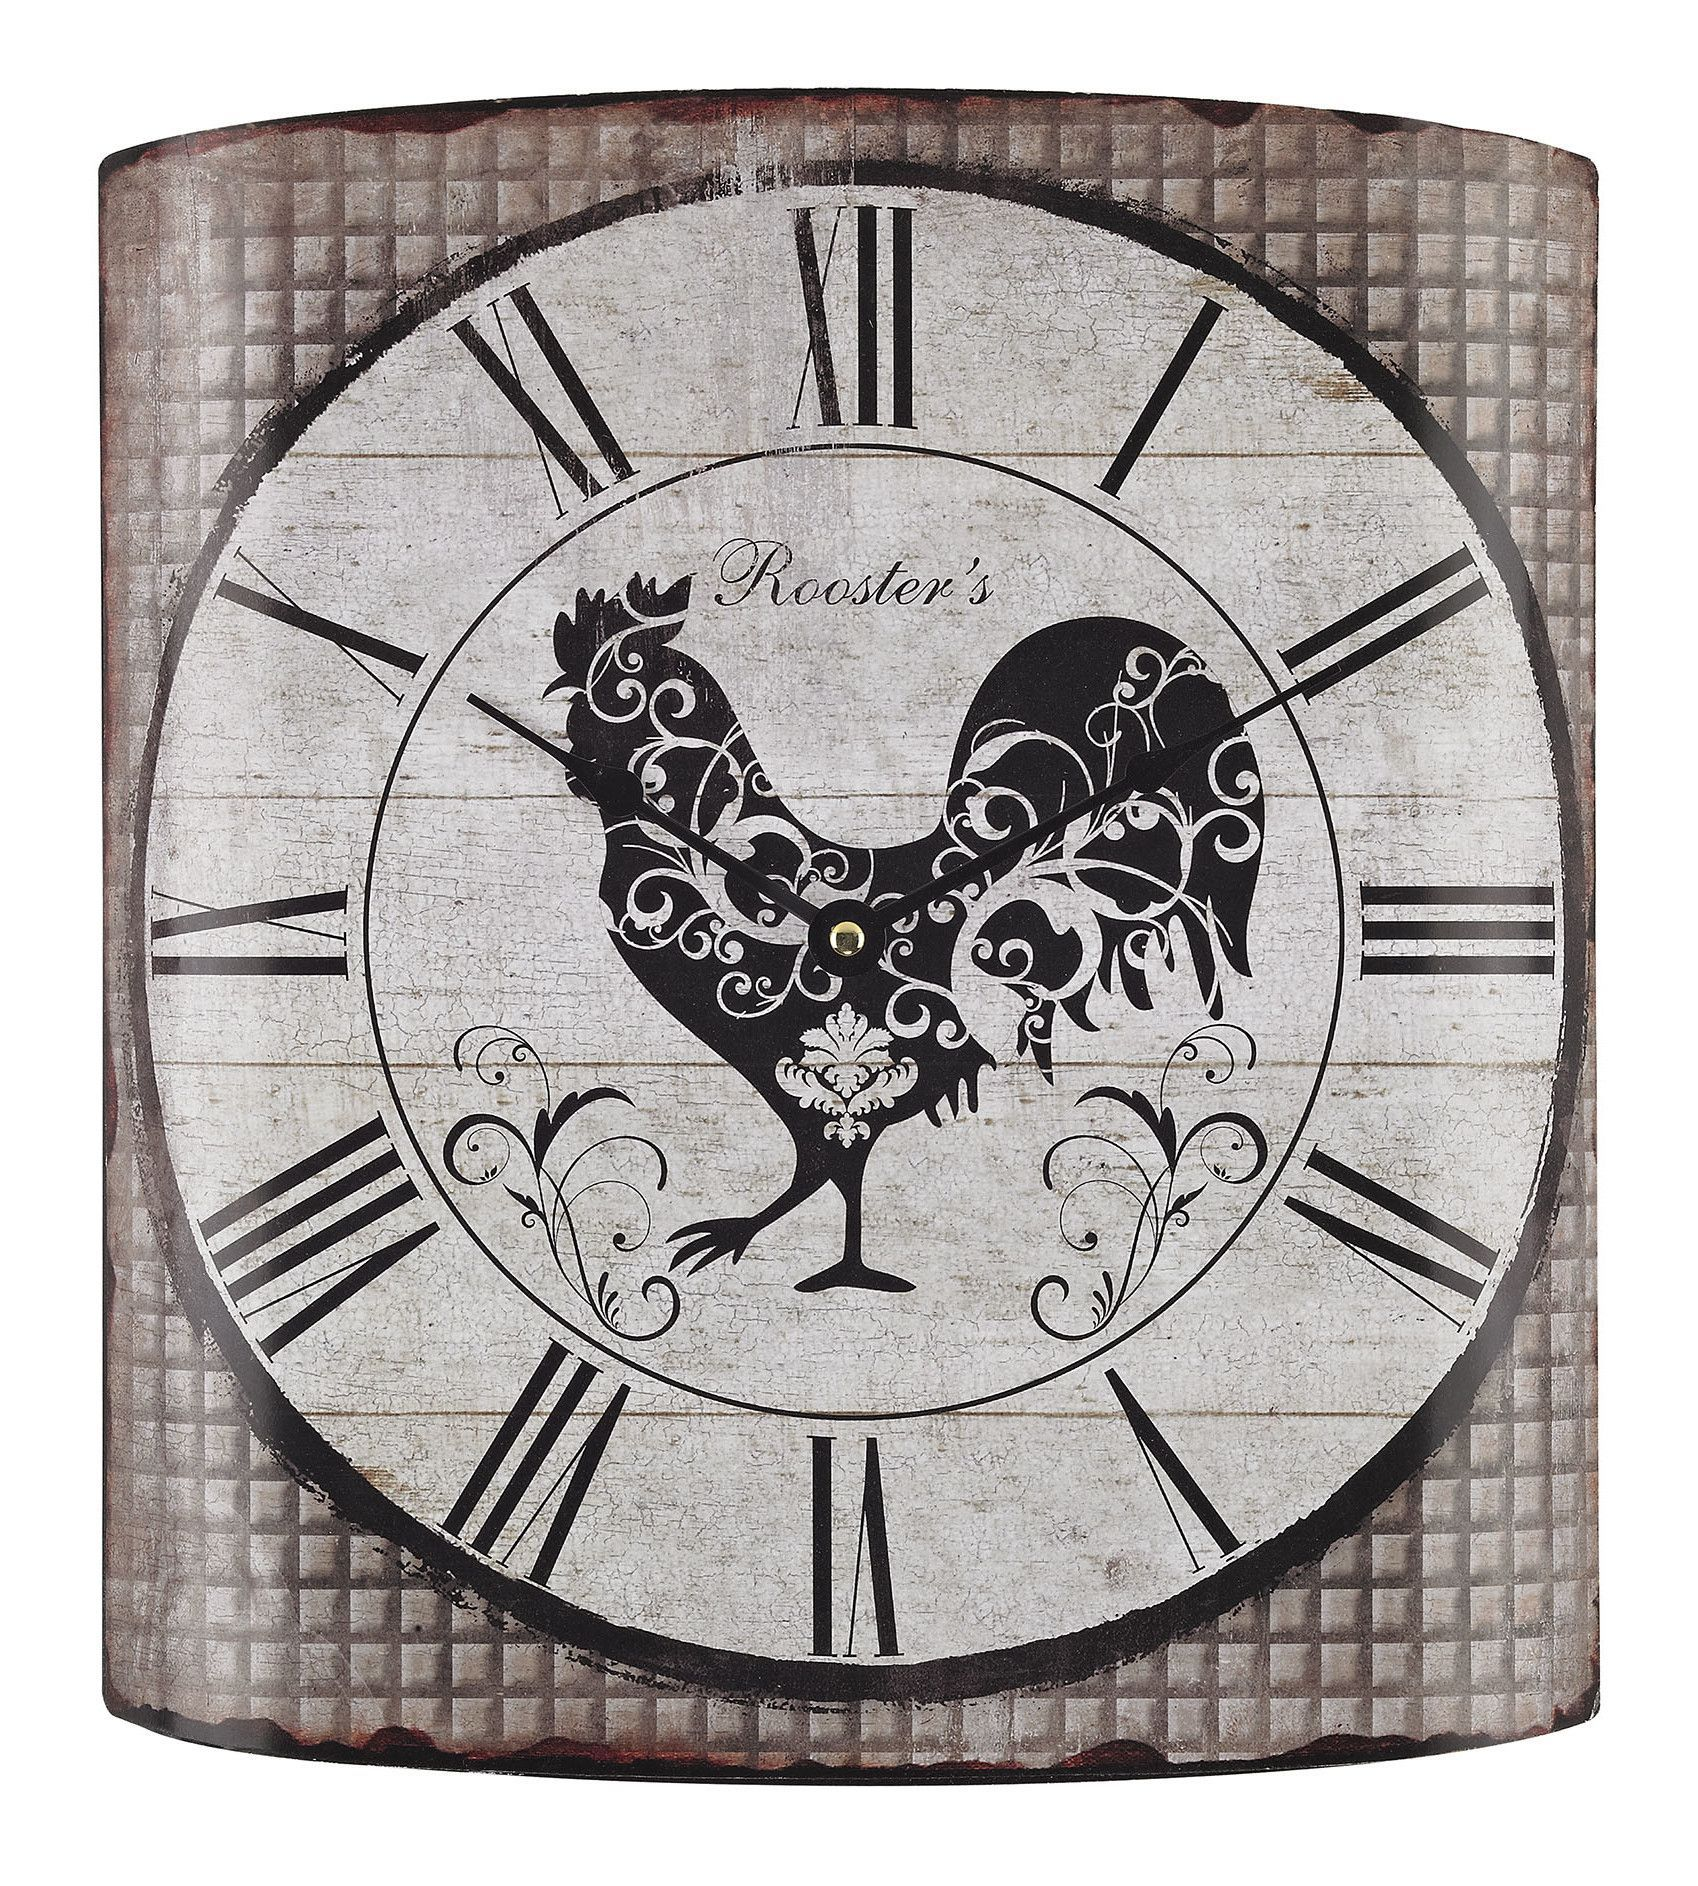 Stylized Rooster Wall Clock | rooster/kitchen decor | Pinterest ...